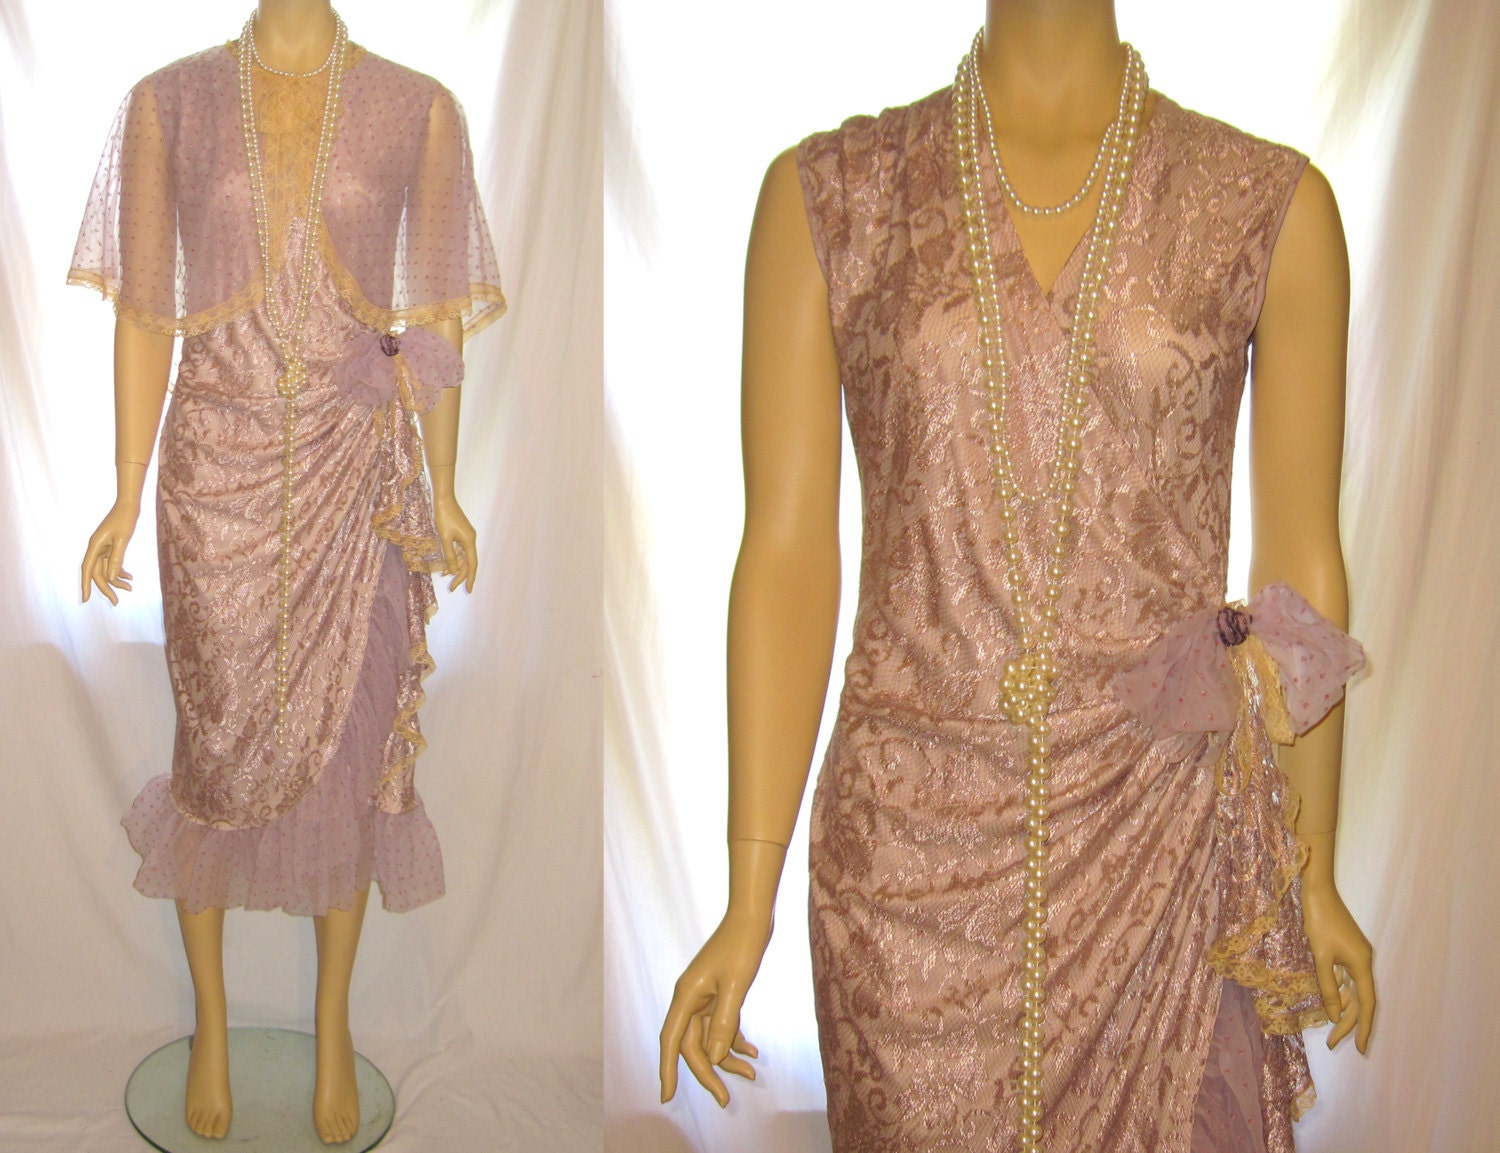 Upcycled handmade mauve color ladies' formal bridesmaids wrap dress, 1920s Great Gatsby dress, long maxi wrap dress bridesmaid wedding dress